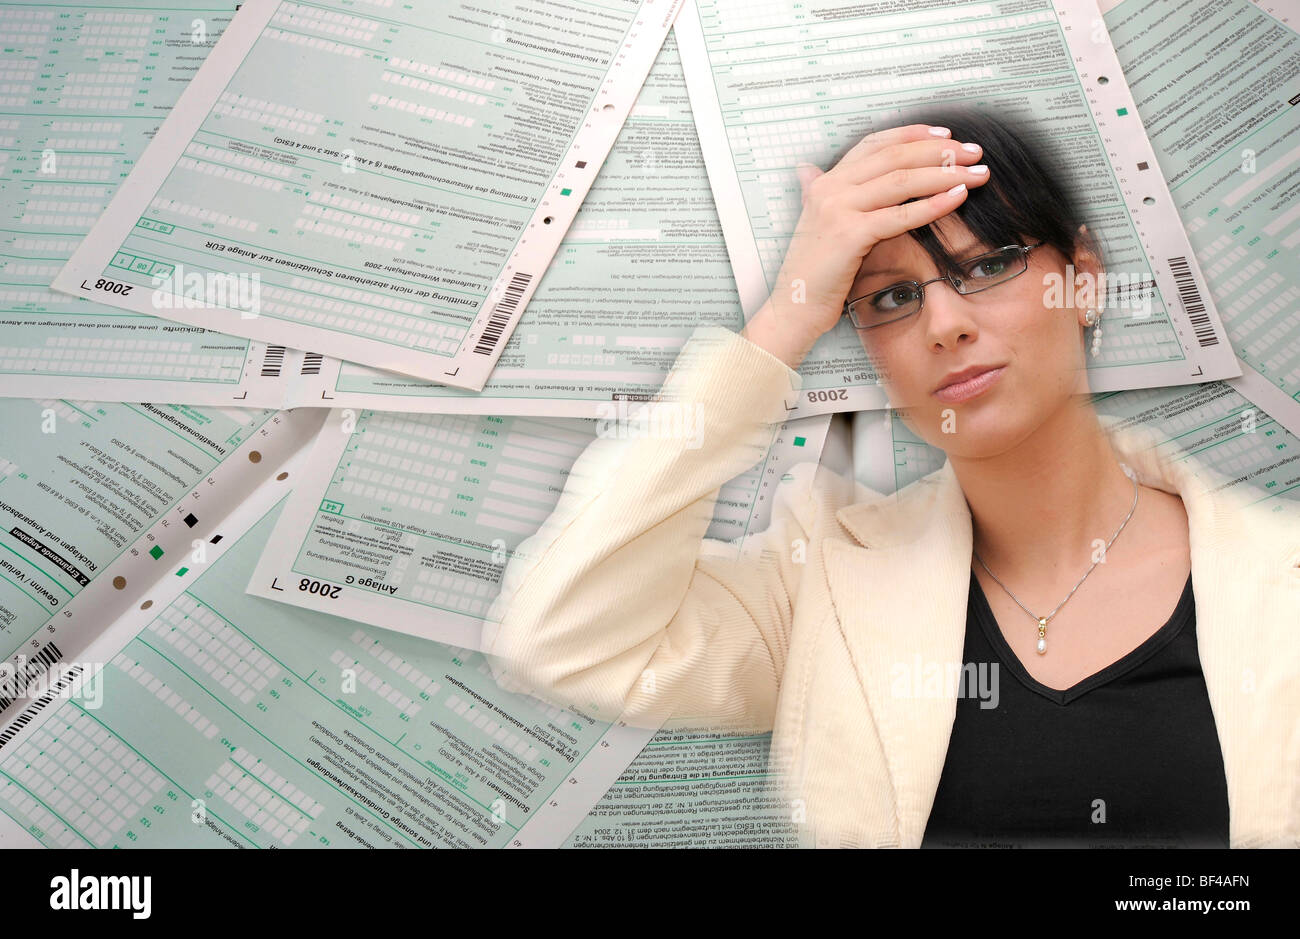 Symbolic image for red tape nightmare, income tax return - Stock Image